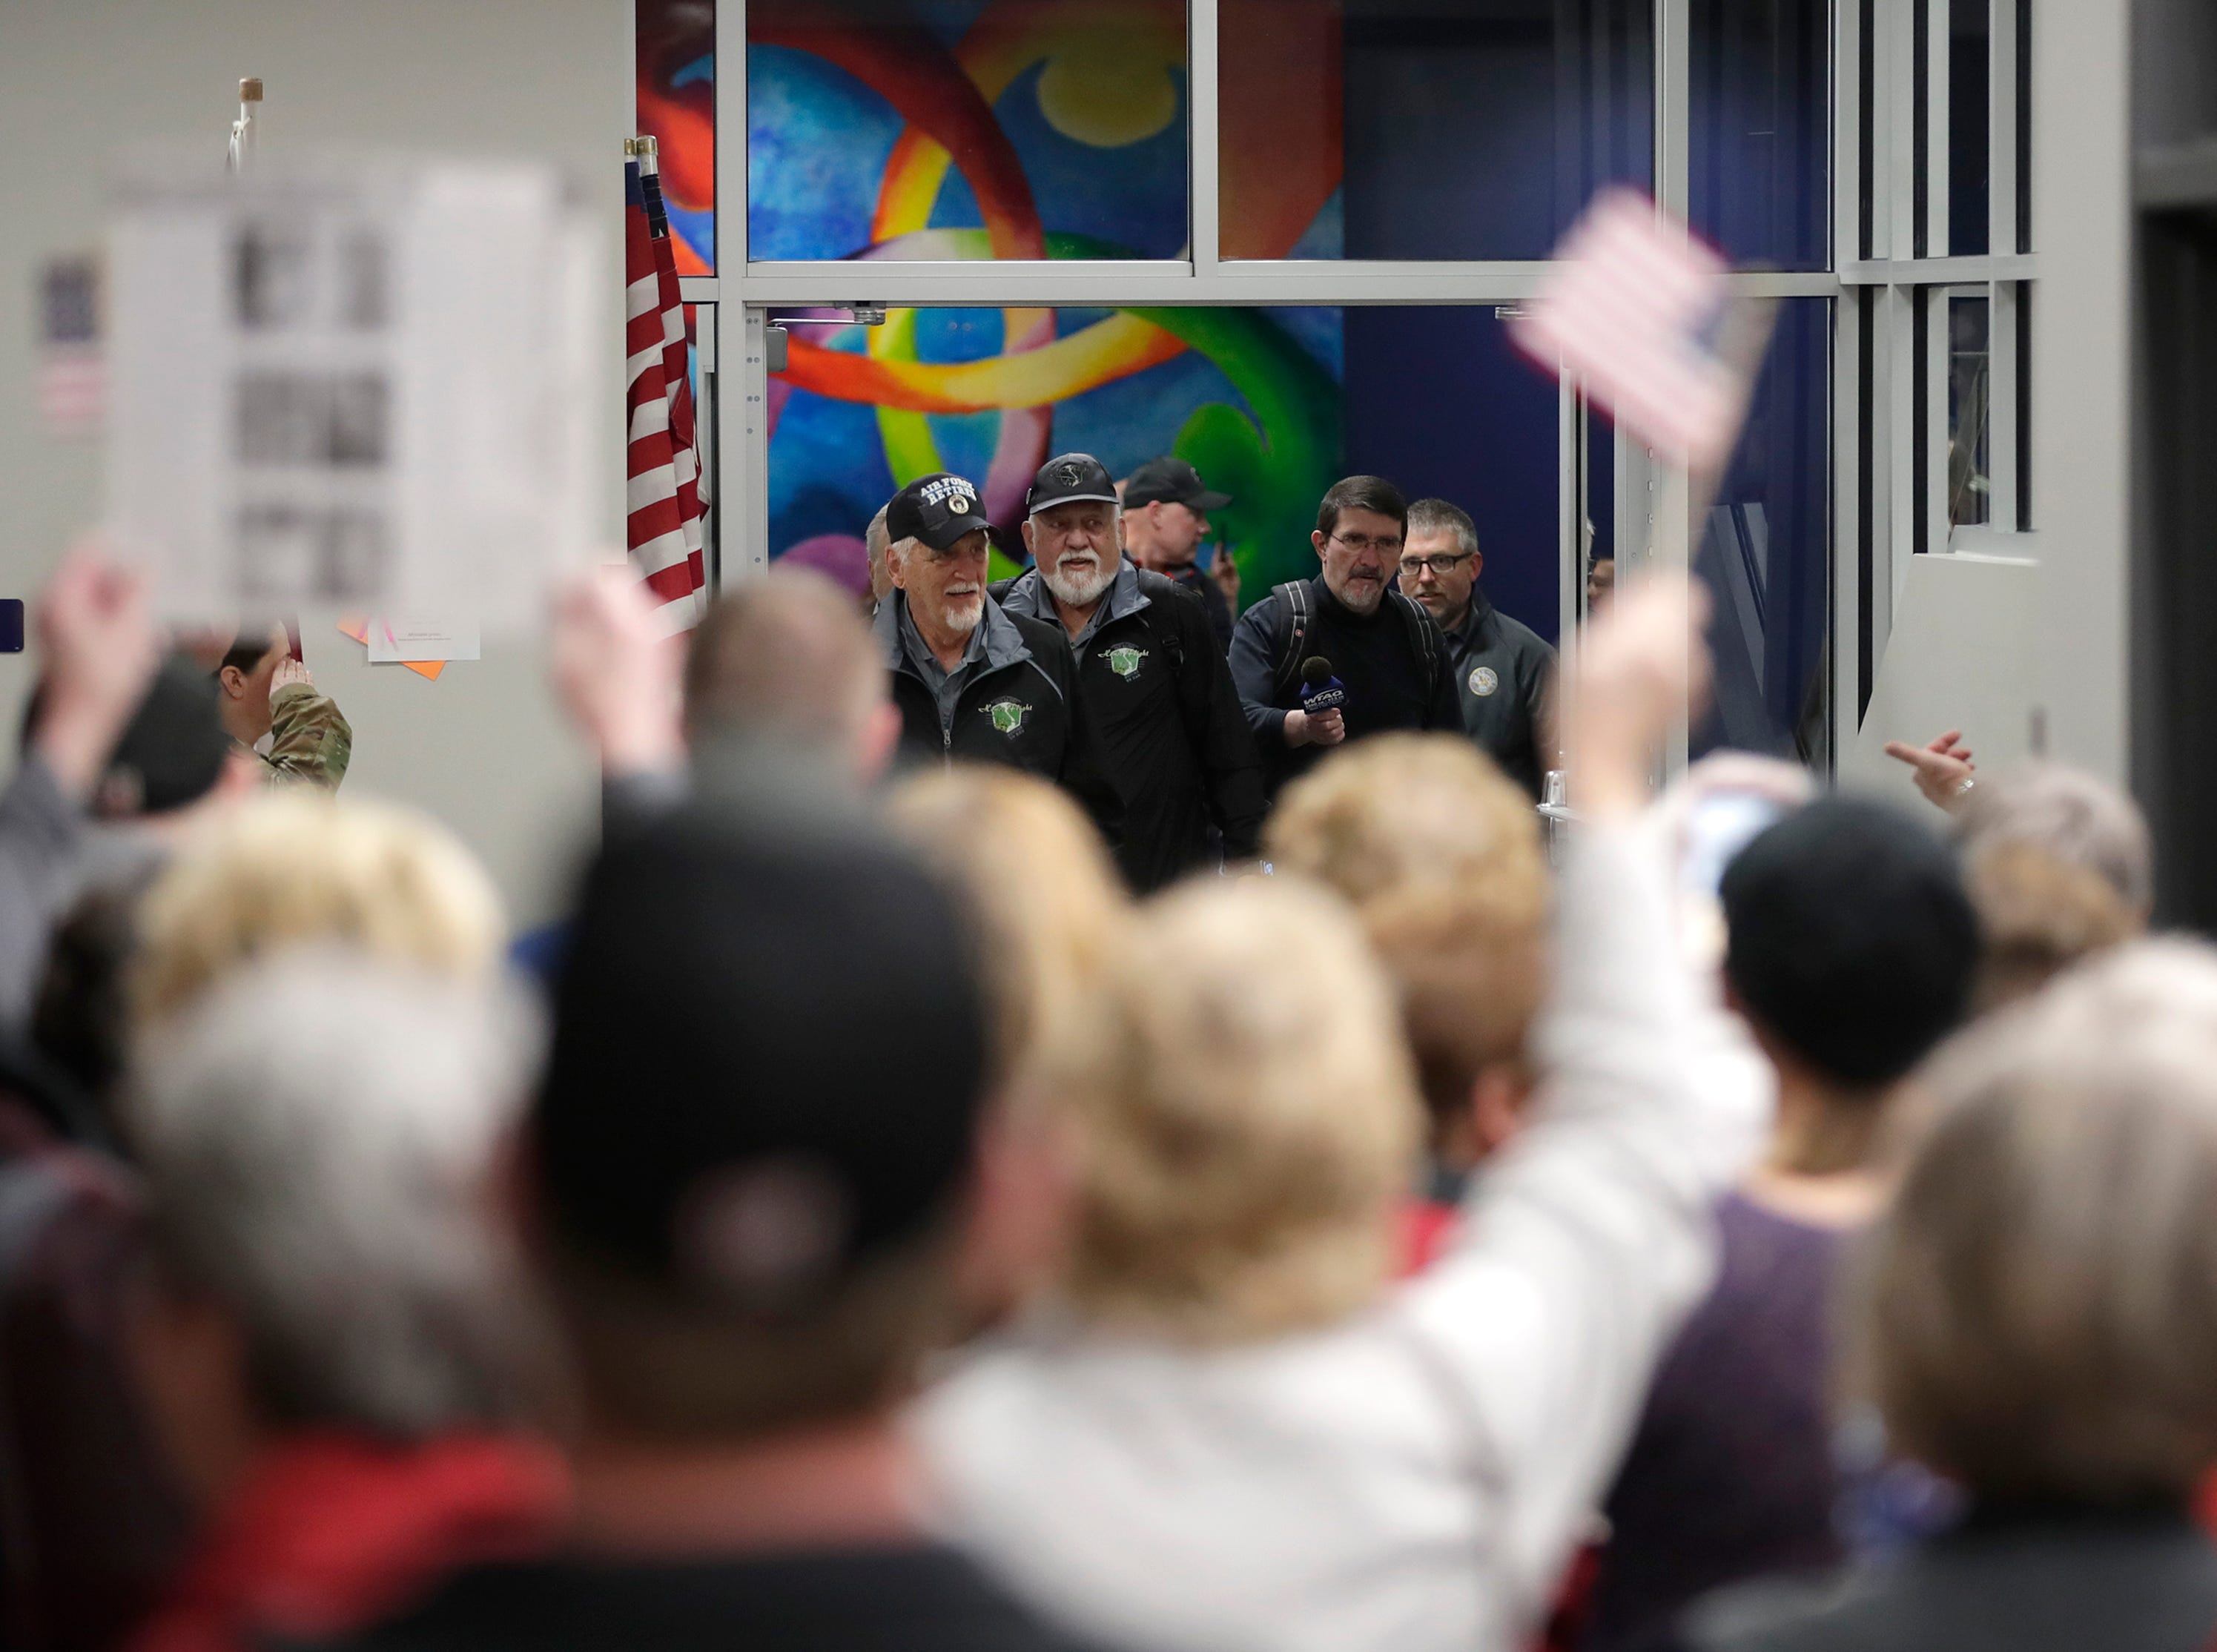 Vietnam veterans are greeted by loved ones during the Old Glory Honor Flight-Return to Nam welcome home Saturday, March 9, 2019, at Menasha High School in Menasha, Wis. Veterans were greeted by friends, family, the Menasha High School band, and the 484th Army Band.Danny Damiani/USA TODAY NETWORK-Wisconsin